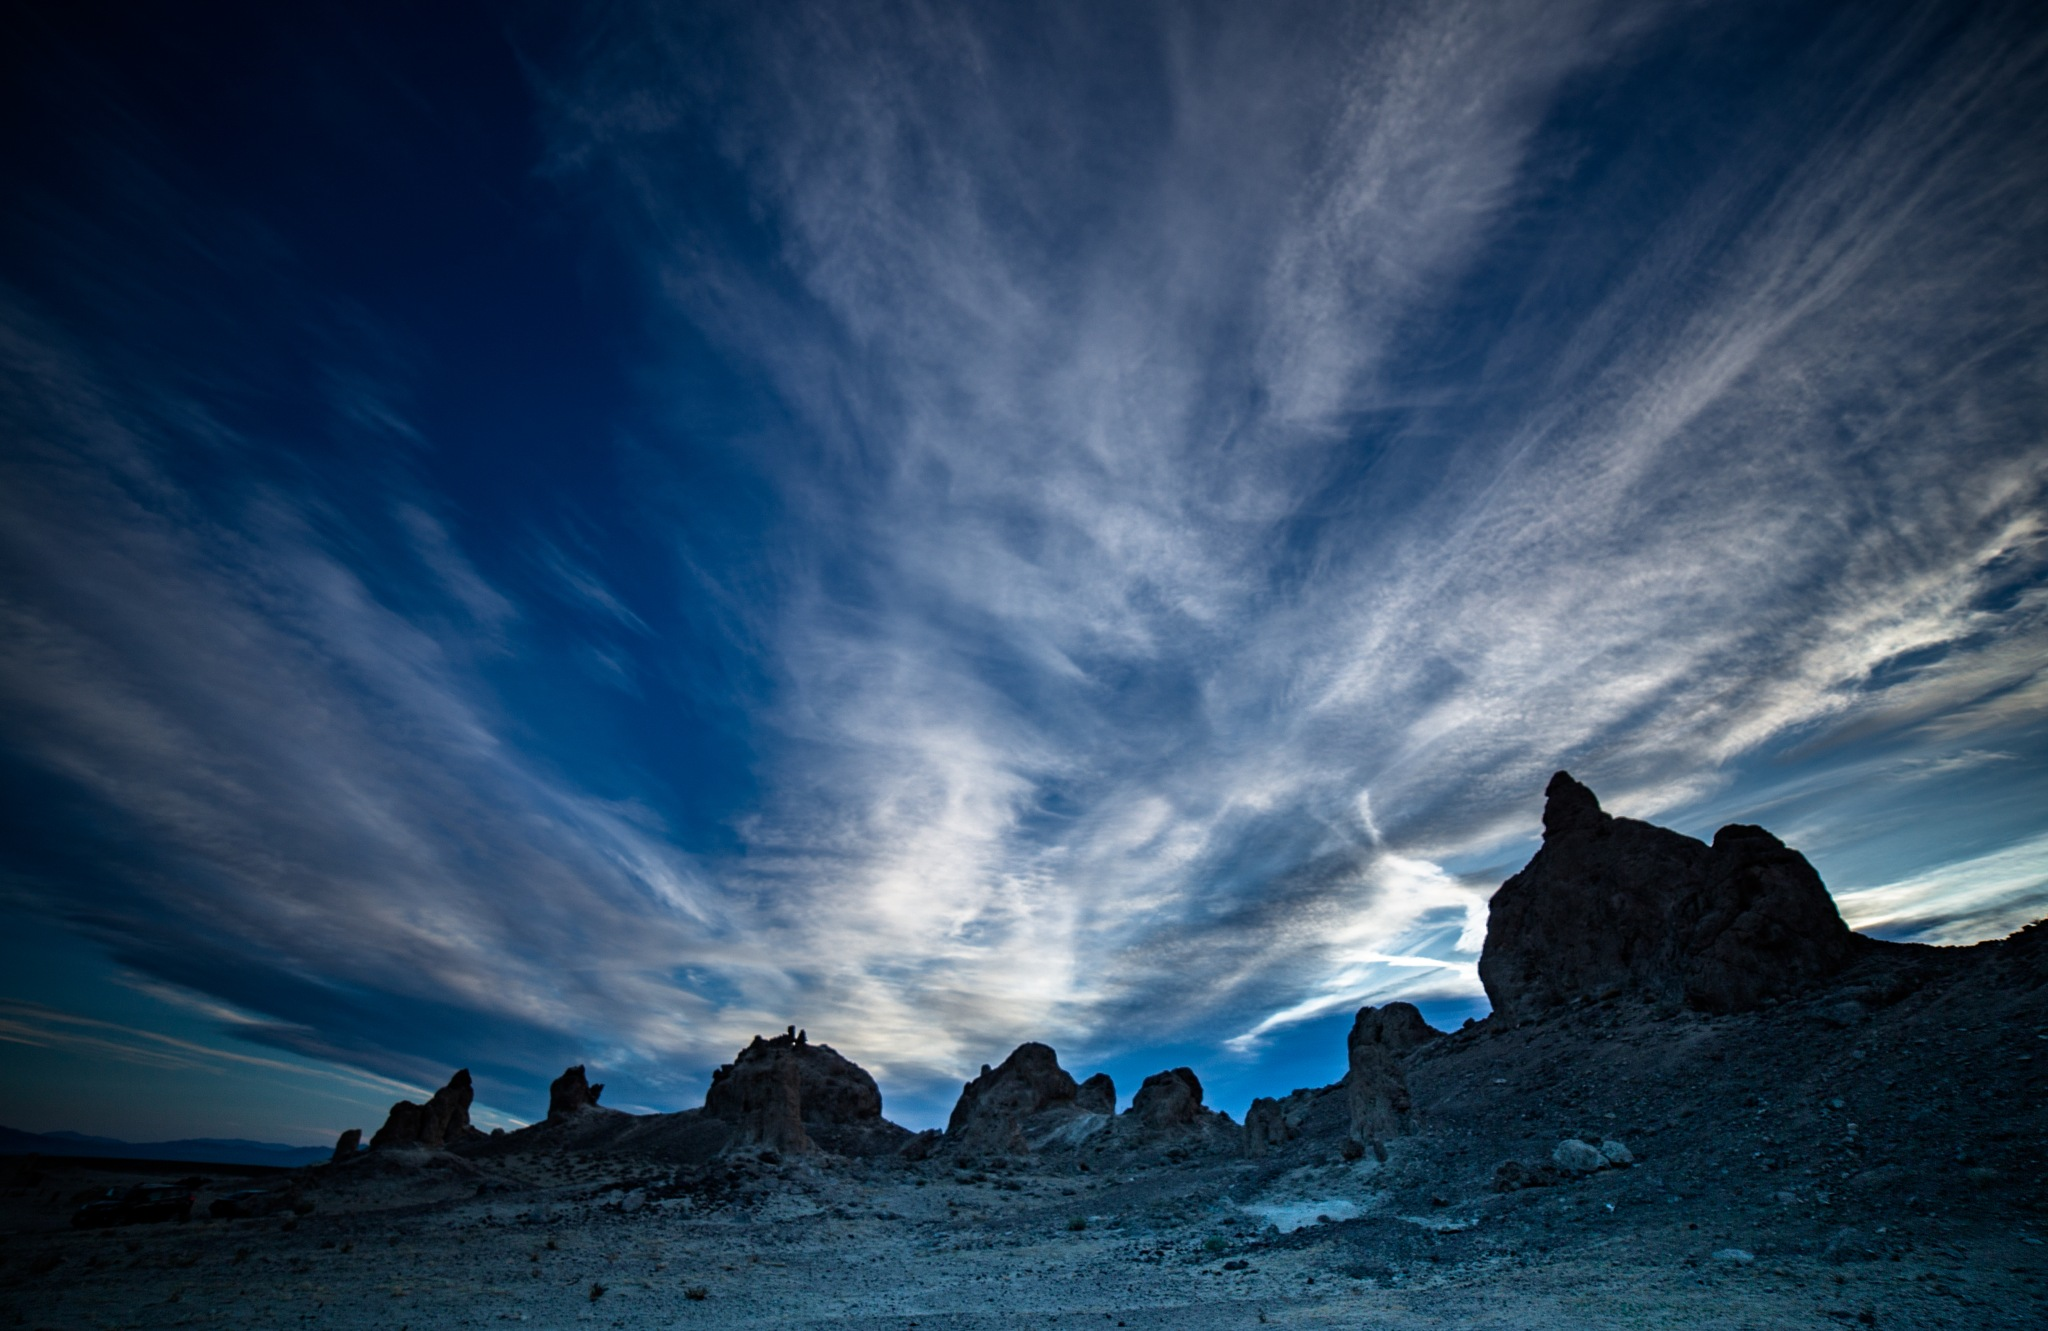 early morning at Trona Pinnacles by volkhard sturzbecher